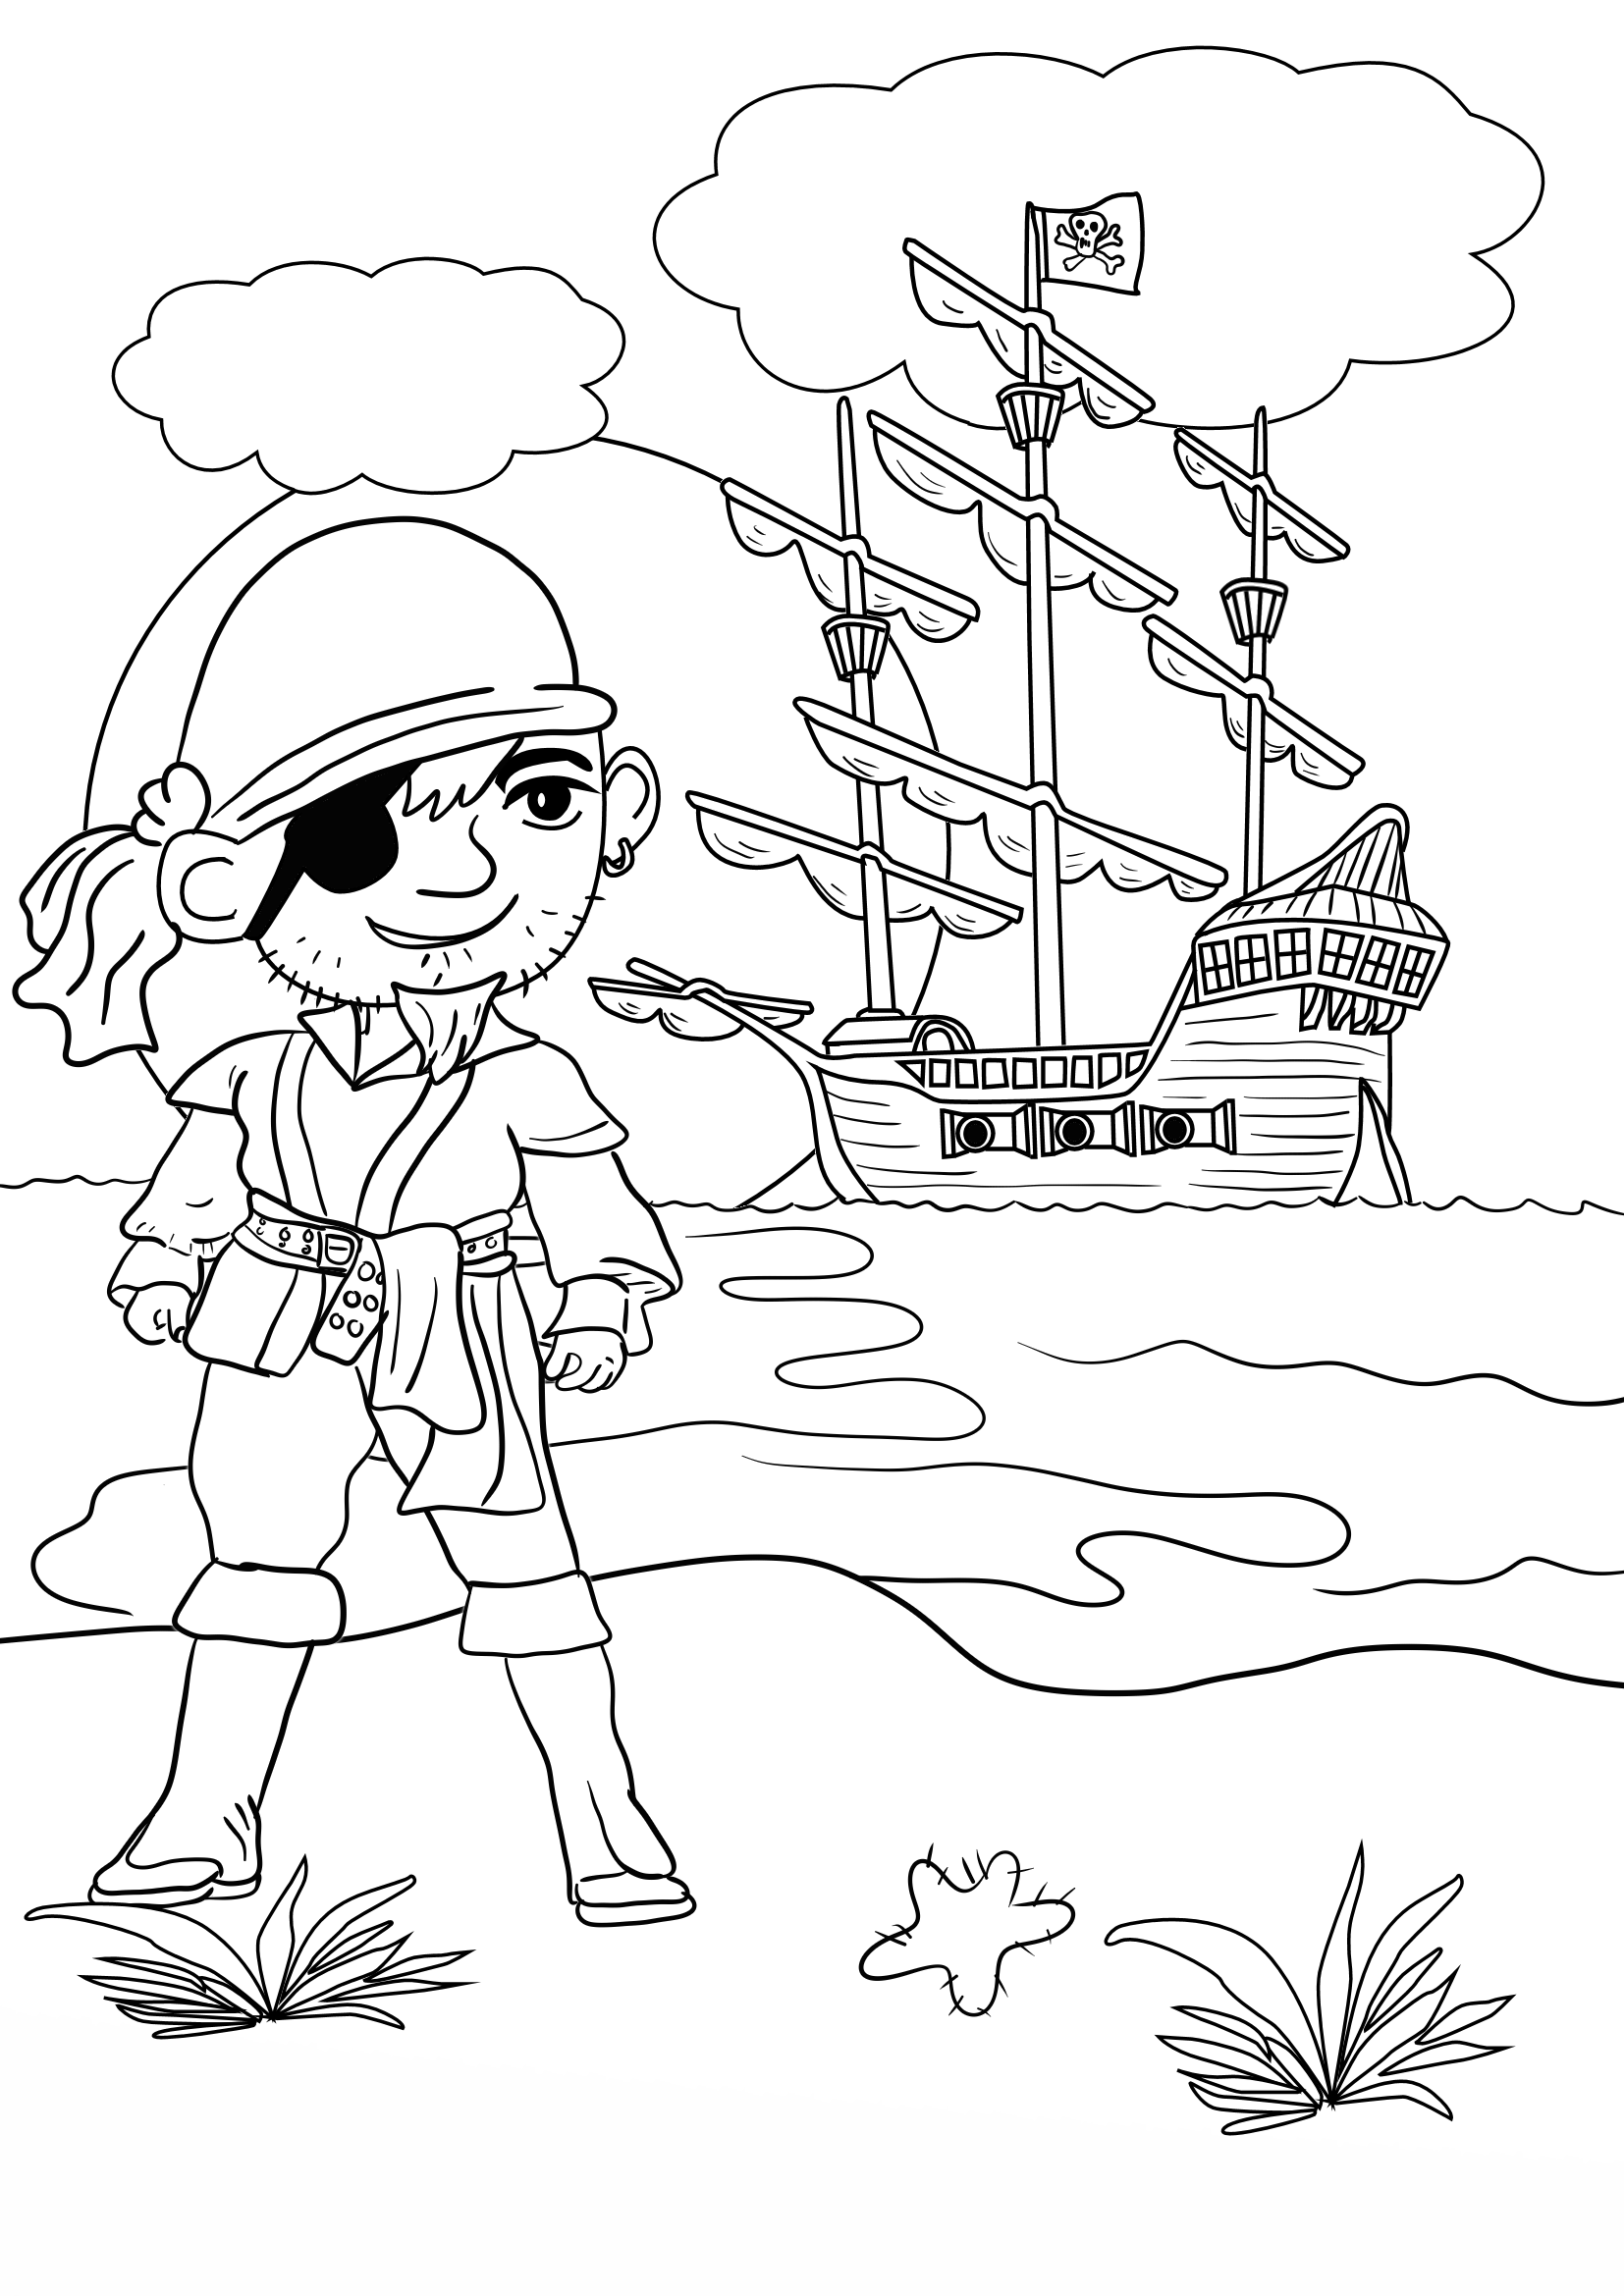 pirate coloring pages for kids free printable pirate coloring pages for kids for coloring pages pirate kids